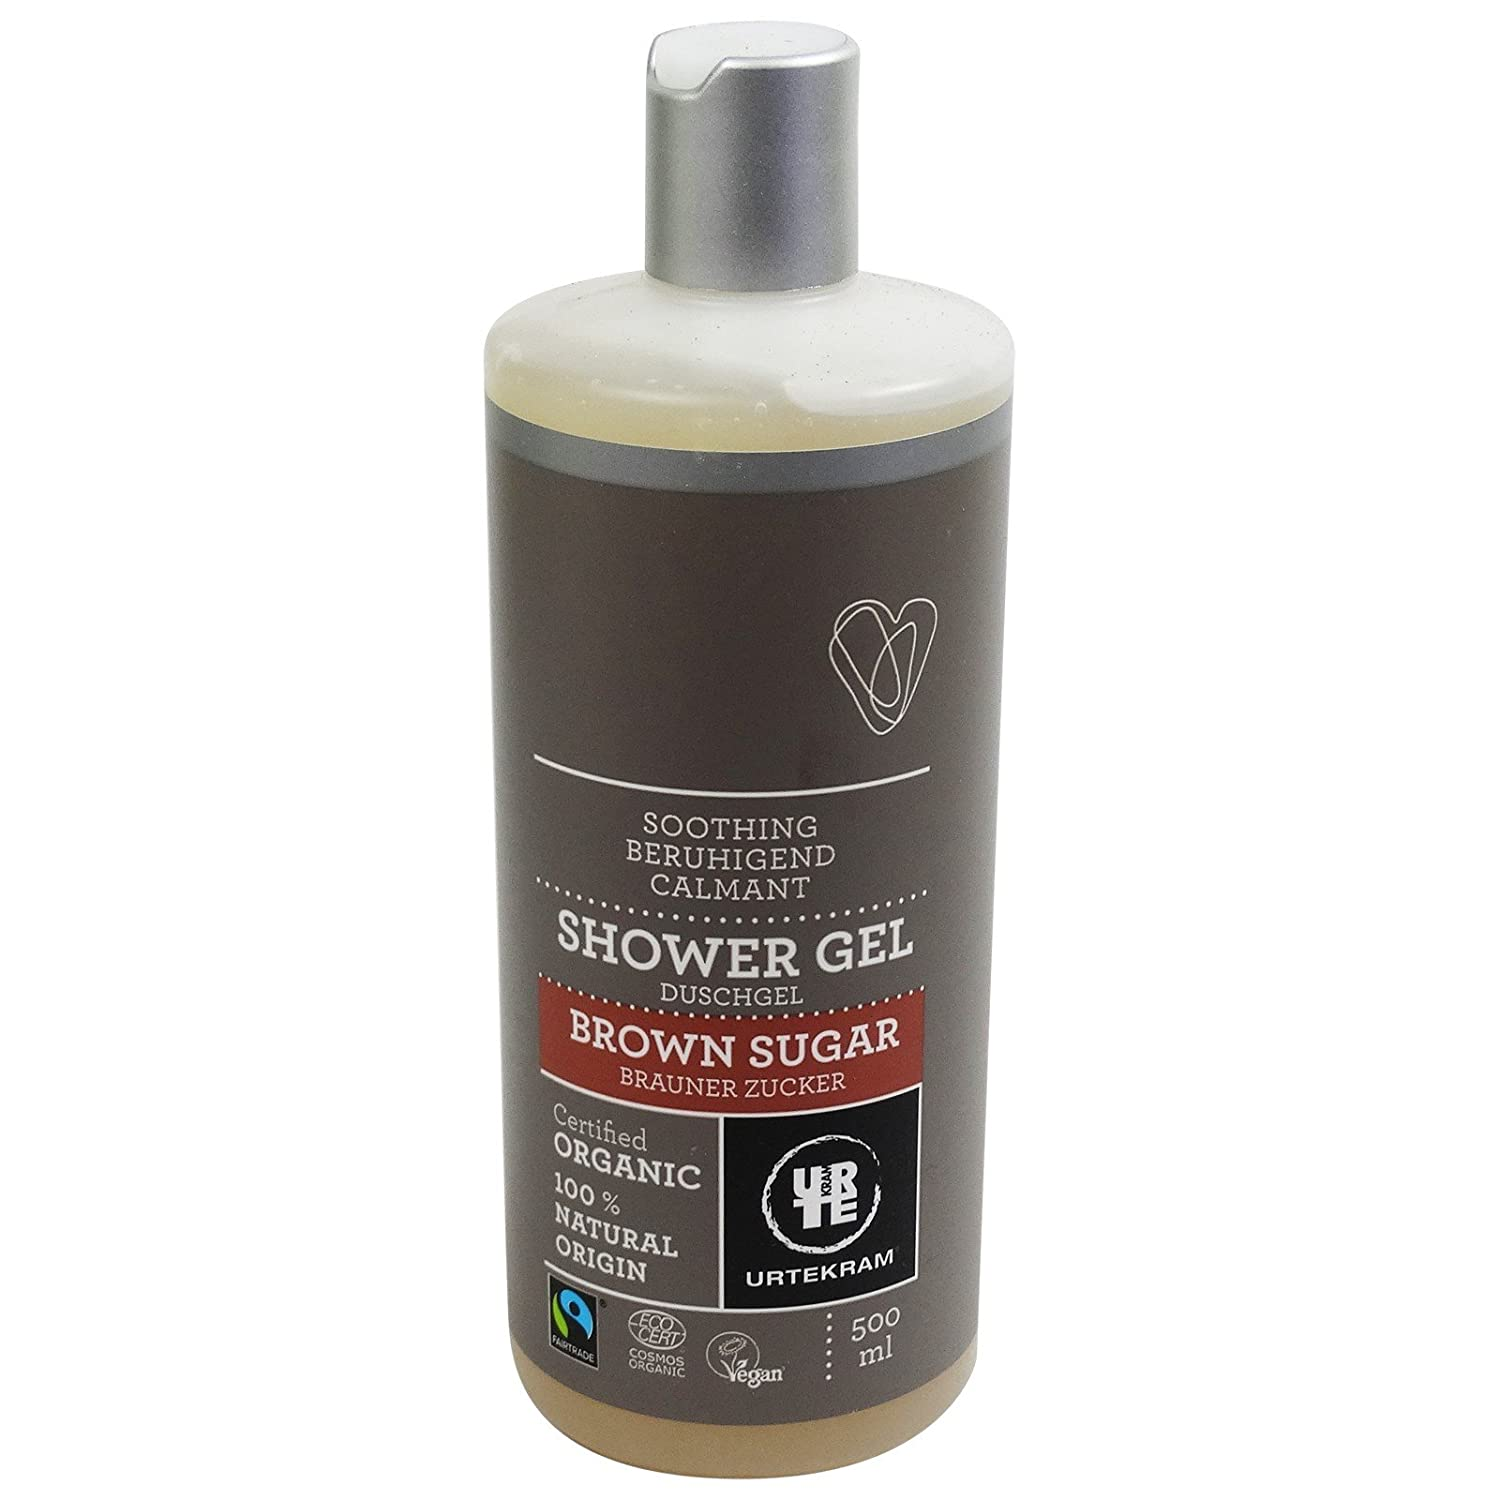 Brown Sugar Shower Gel Urtekram